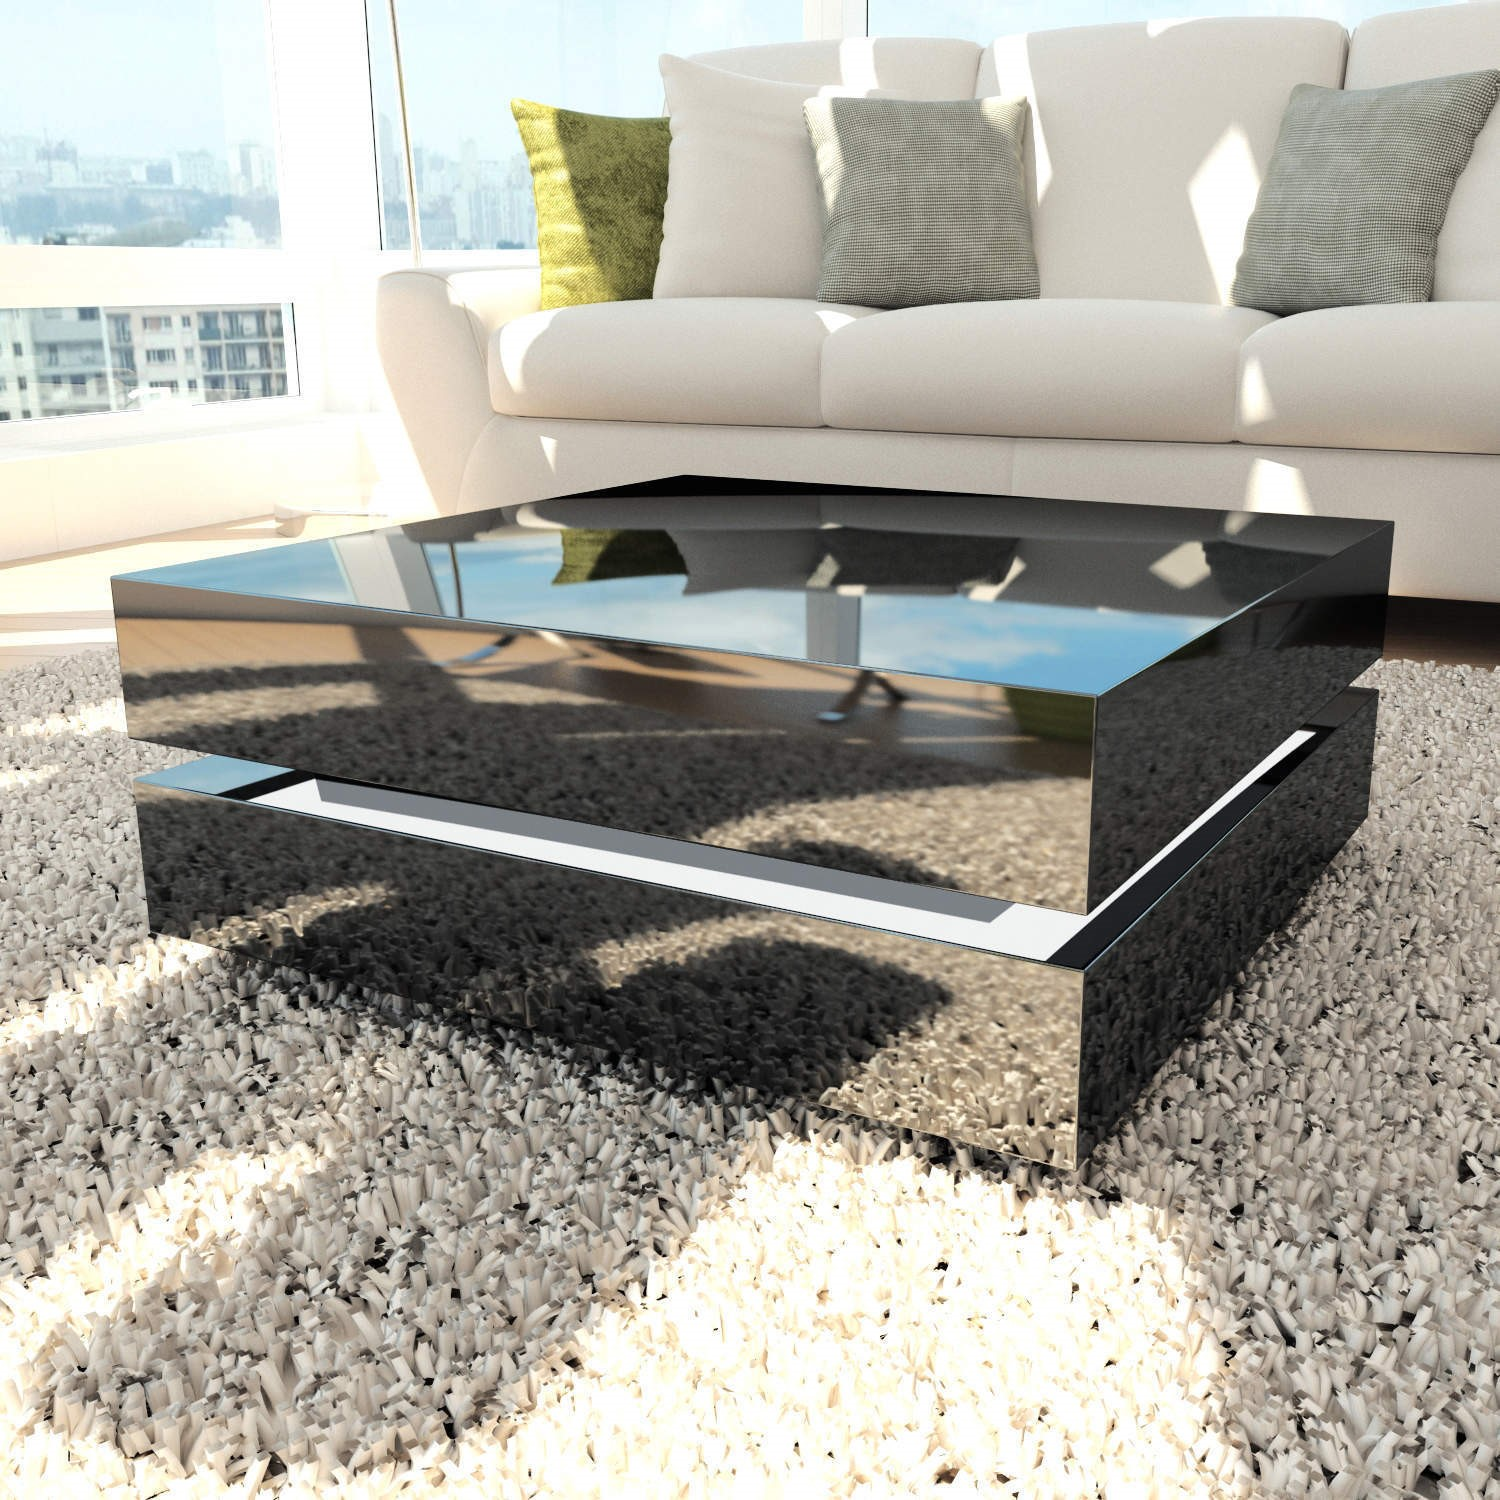 Tiffany black high gloss cubic led coffee table tiff015 ebay - How high should a coffee table be ...